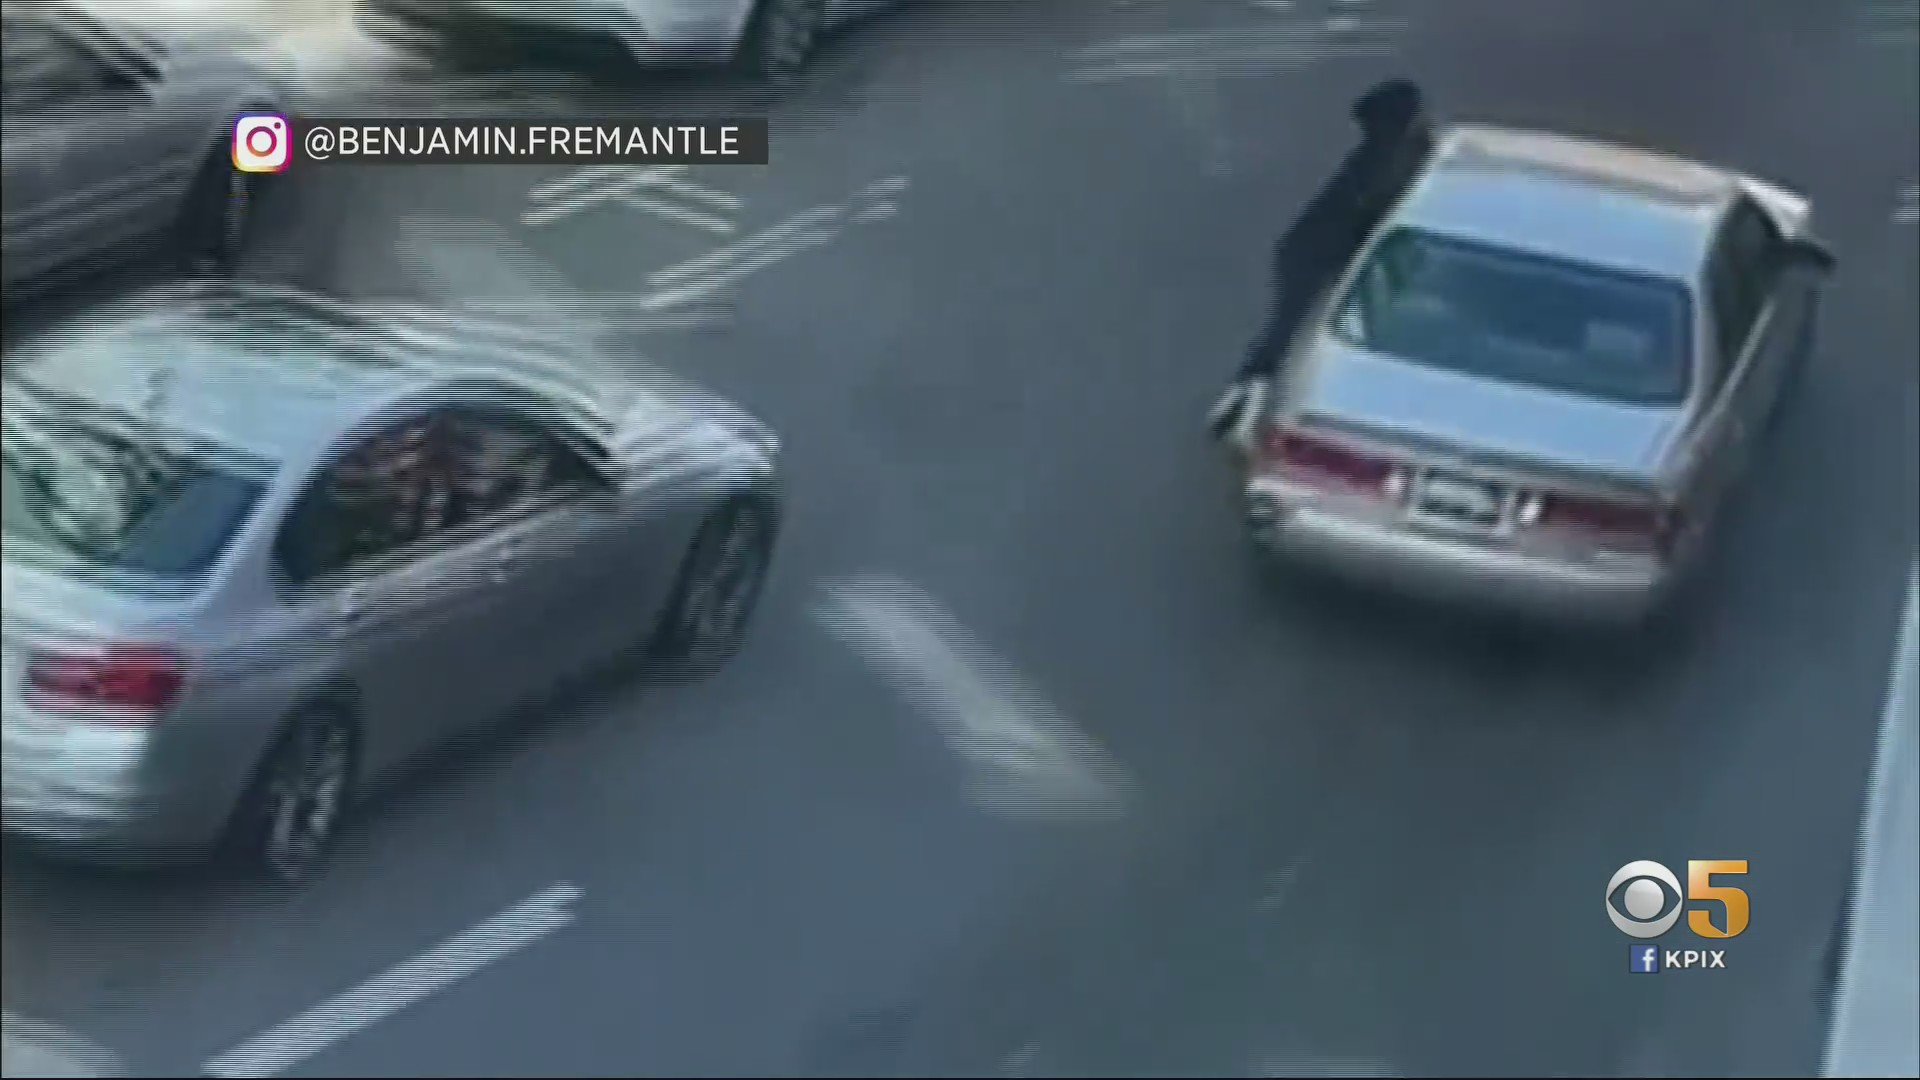 news.yahoo.com: Asian American Attacks: How Bystanders Can Help